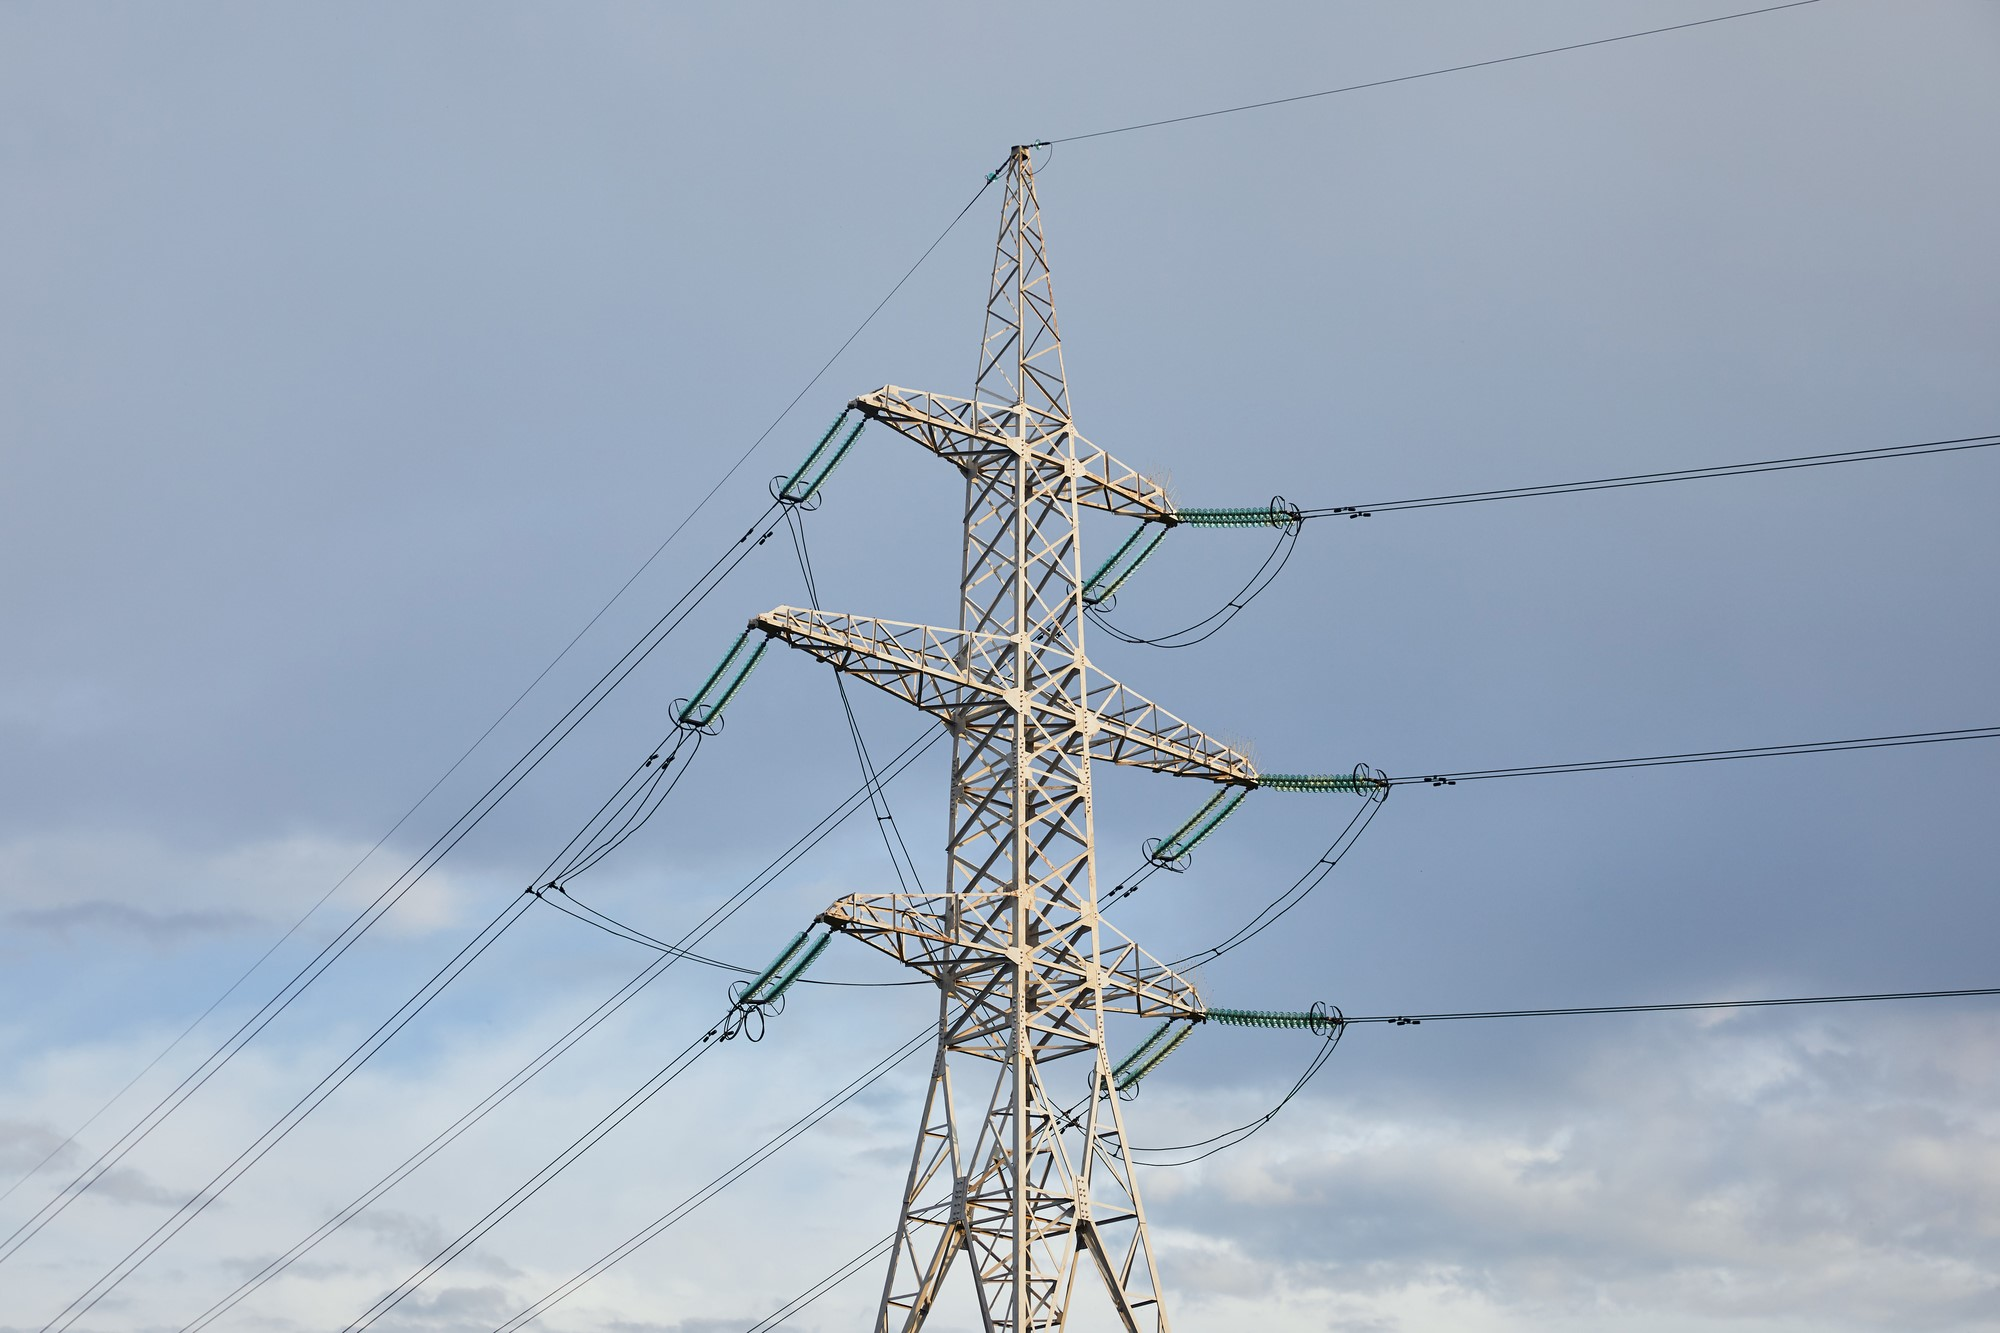 image of a power line